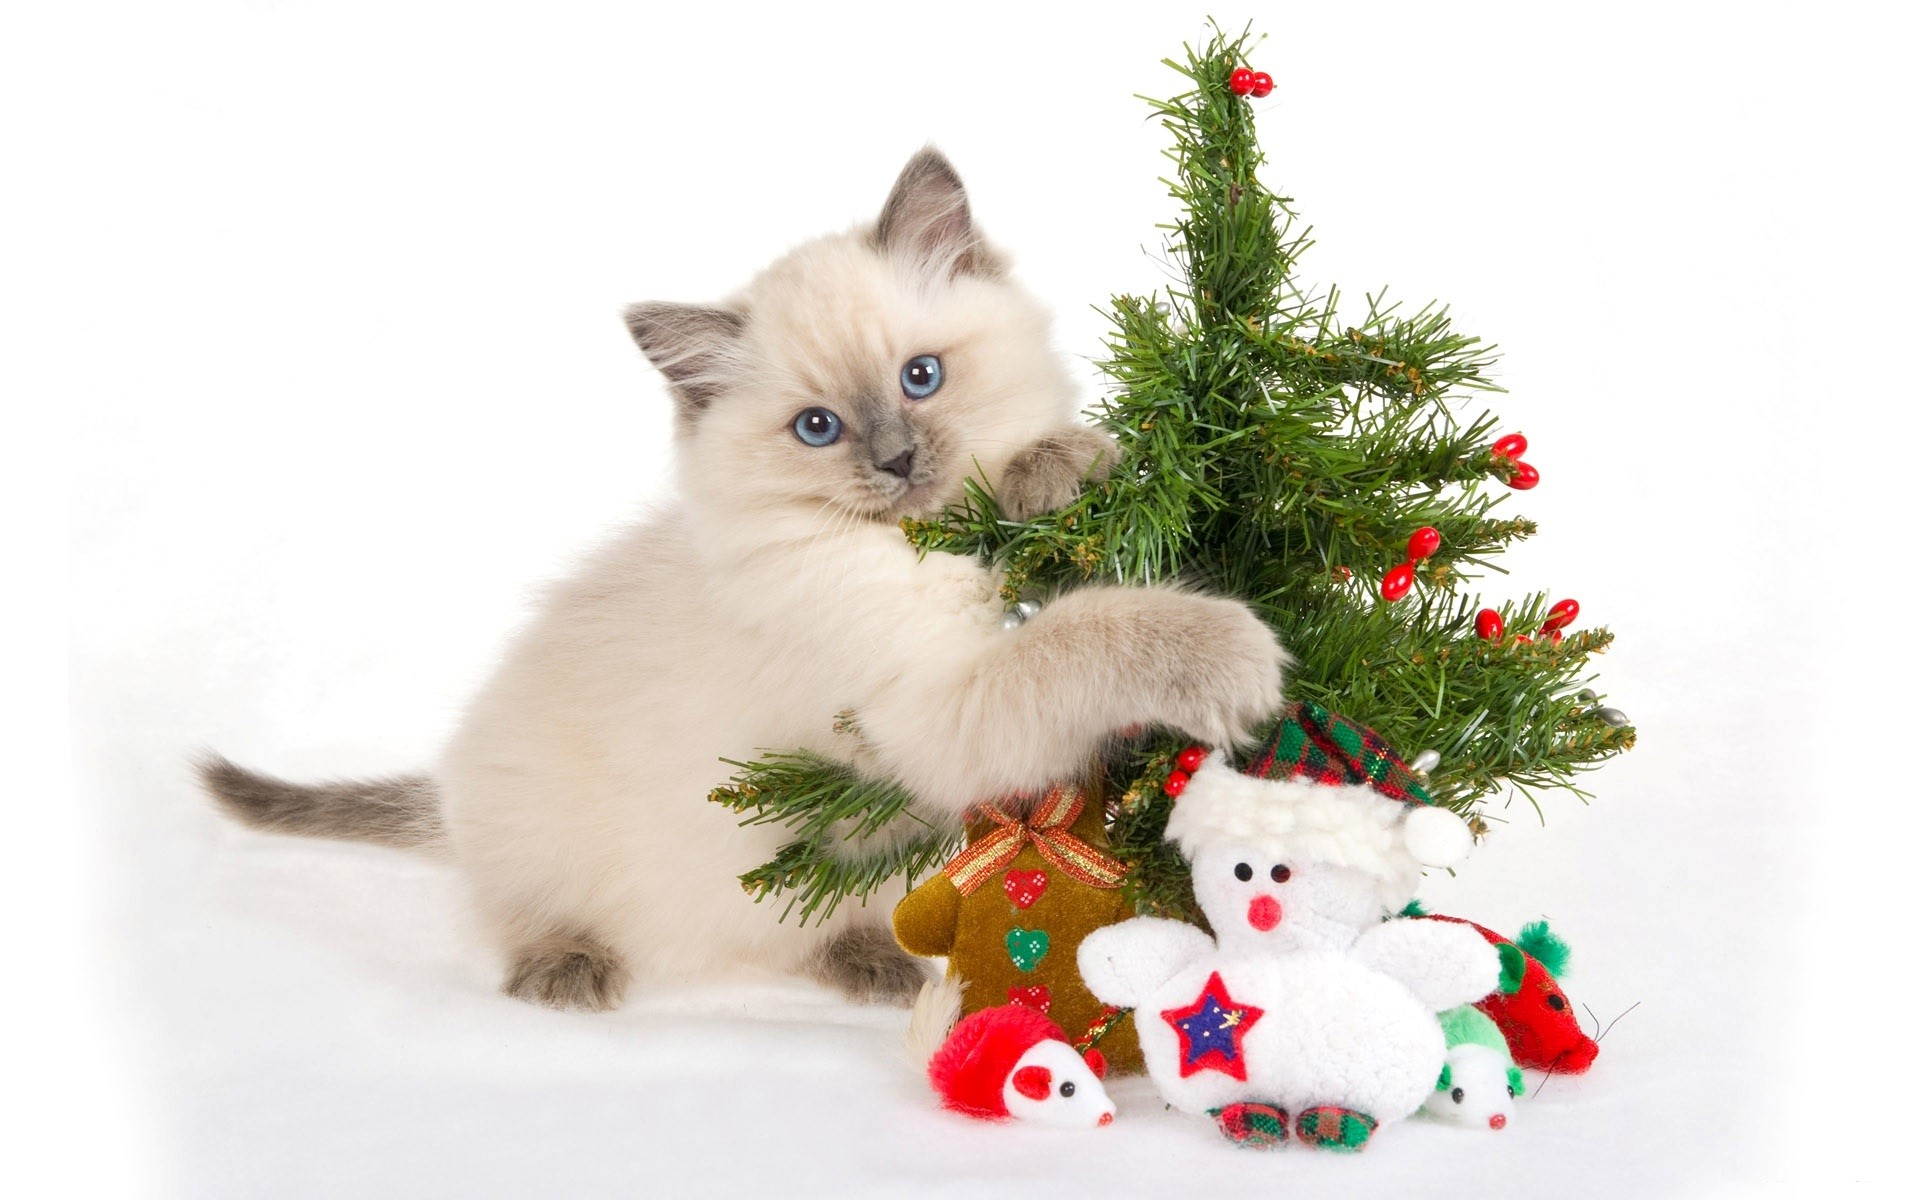 cute christmas backgrounds download free | pixelstalk